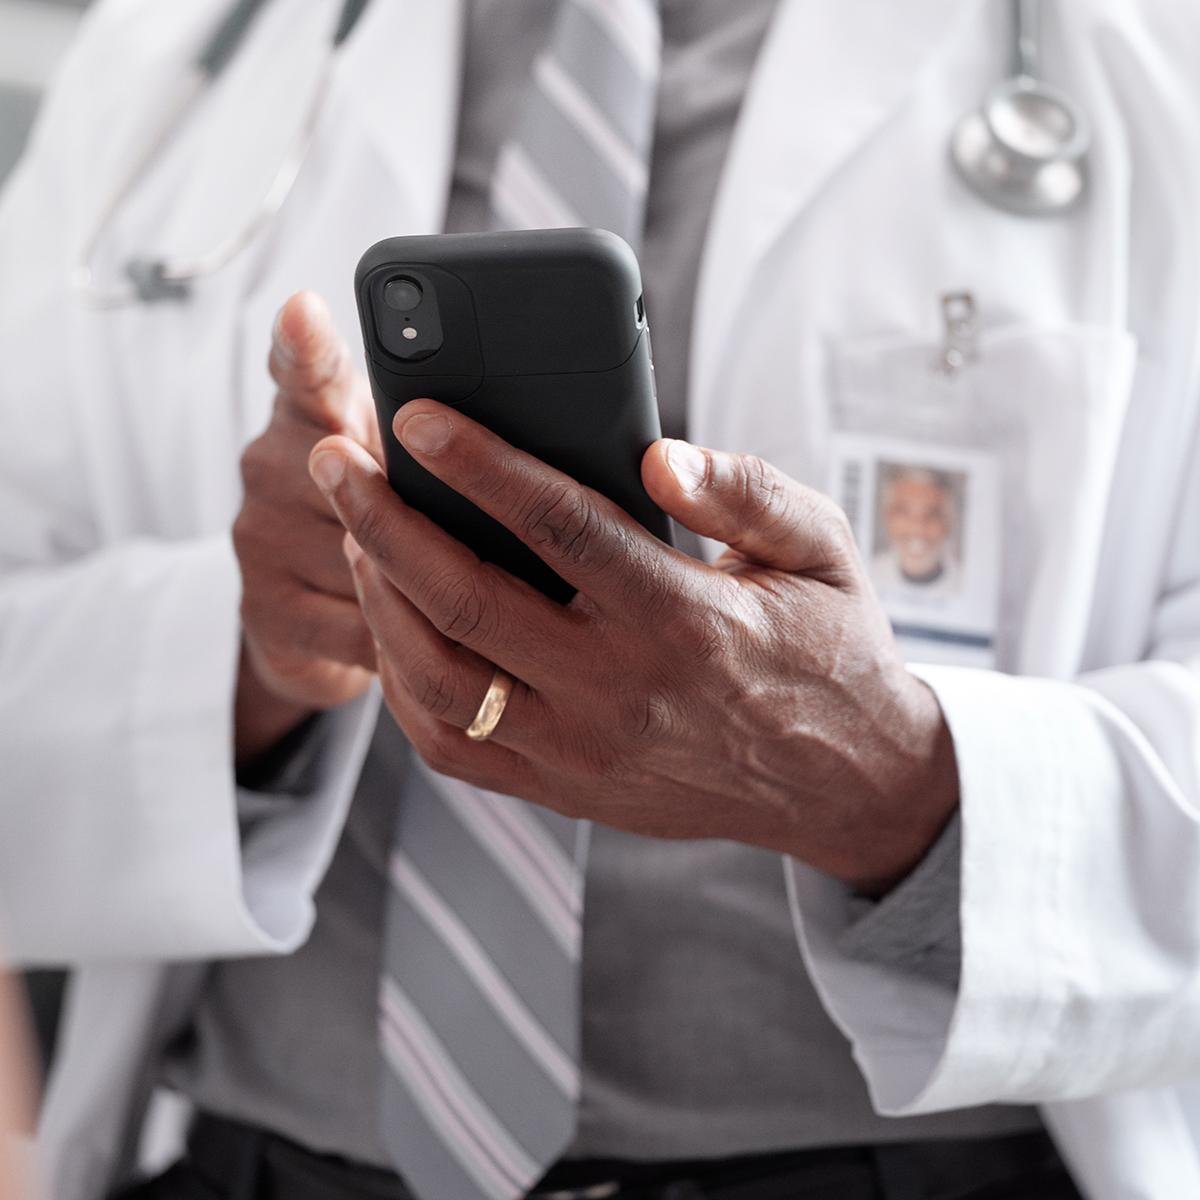 Physician holding smartphone